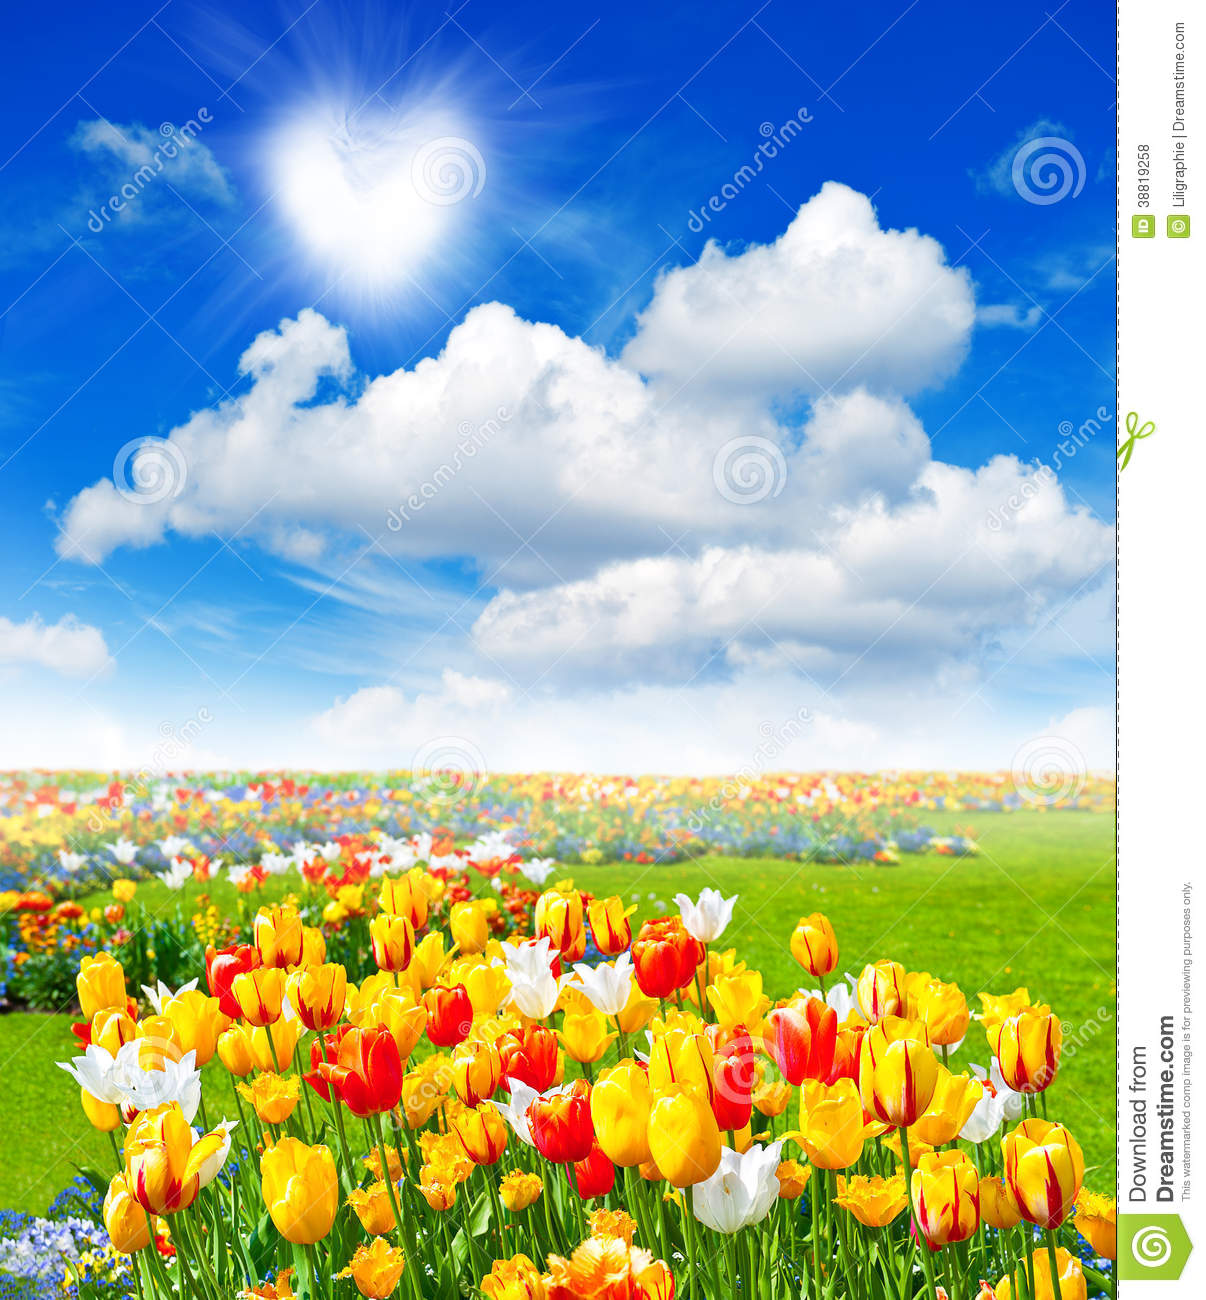 Flowers Field With Colorful Assorted Tulips Stock Photo.